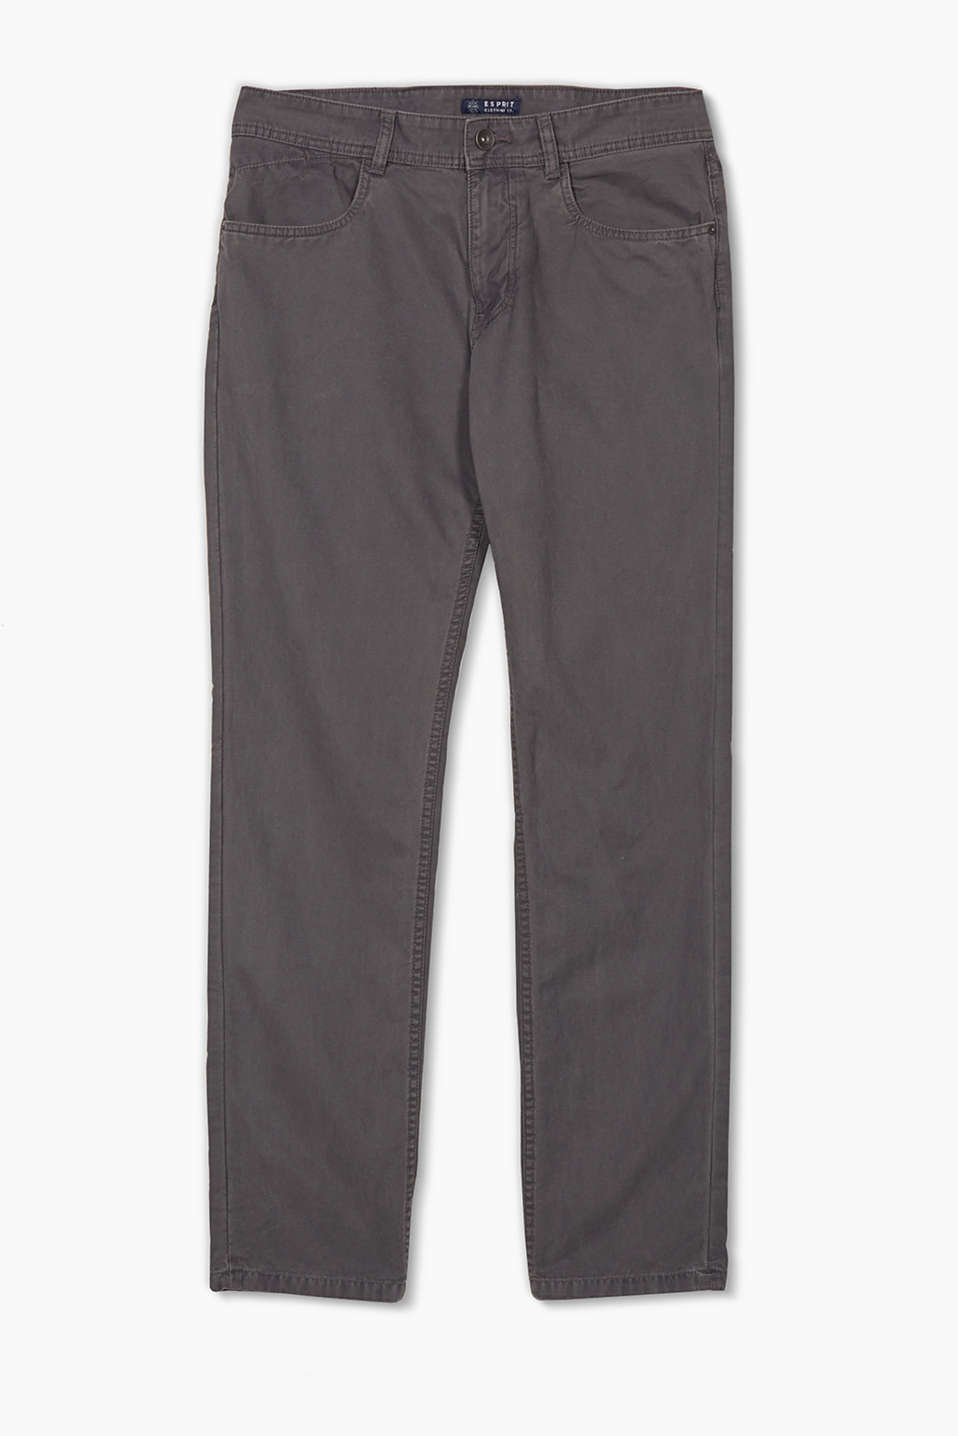 Five-pocket cotton twill trousers with a zip